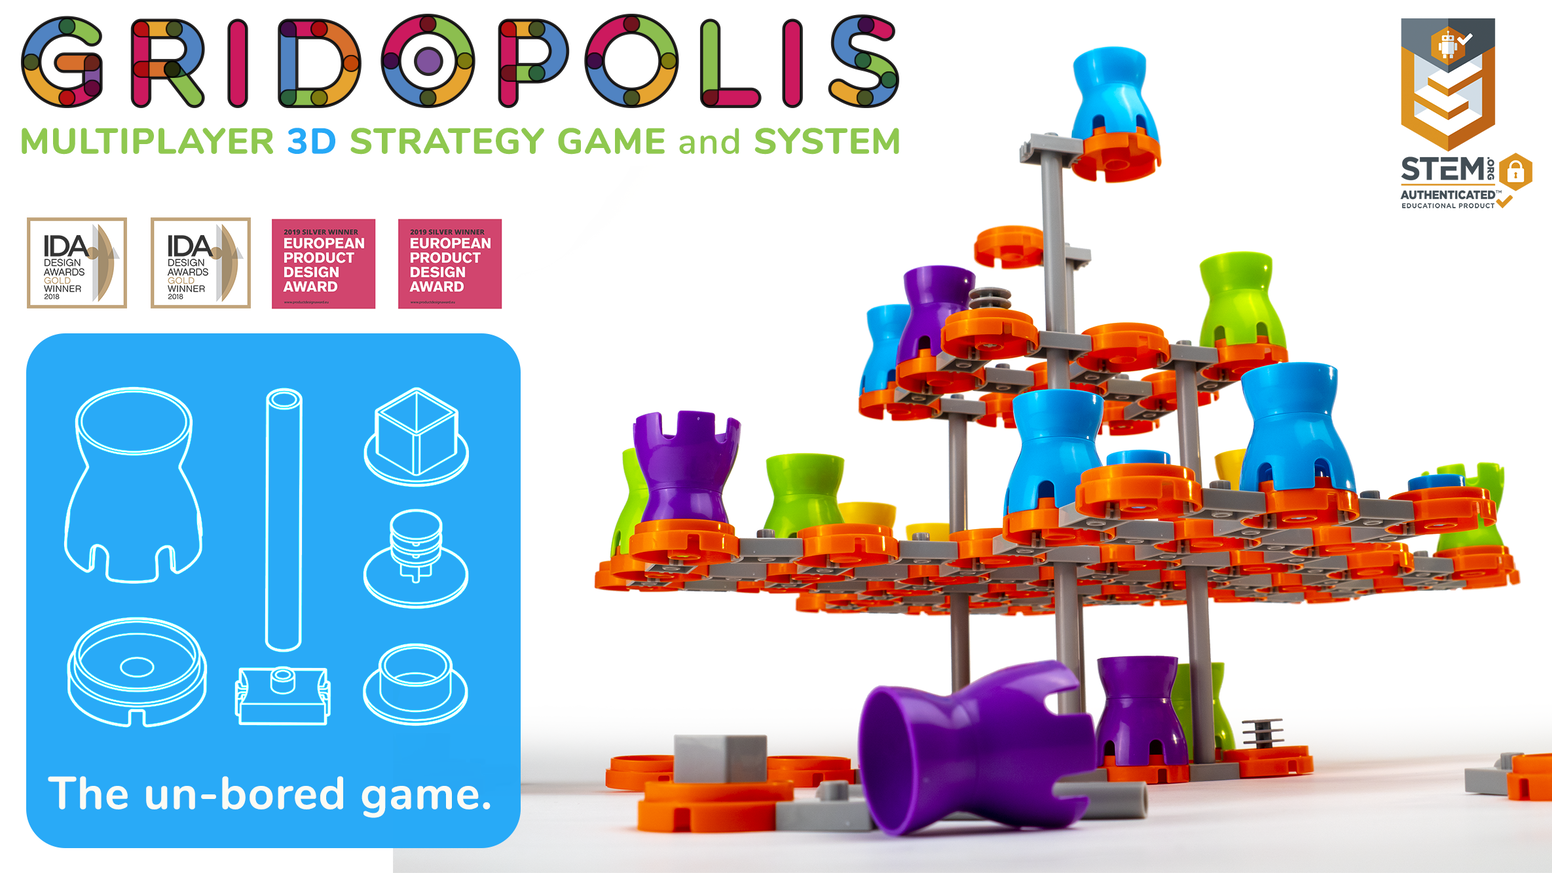 Gridopolis is a multiplayer 3D strategy game and system. It's an innovation in gaming designed for geeks, families & educators alike.